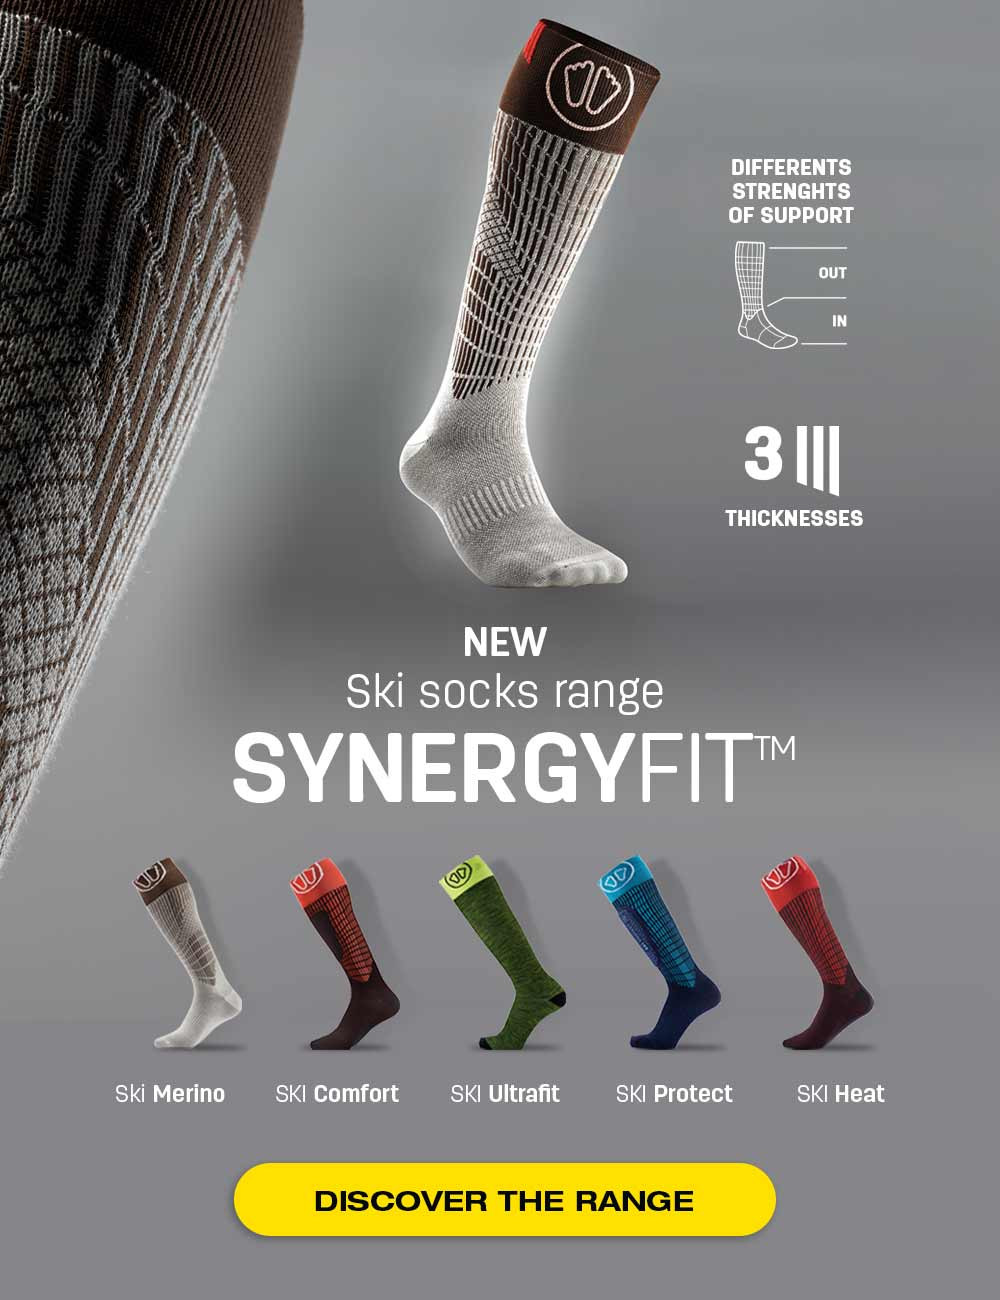 Discover ou new SynergyFit ski socks, adapted to your needs!